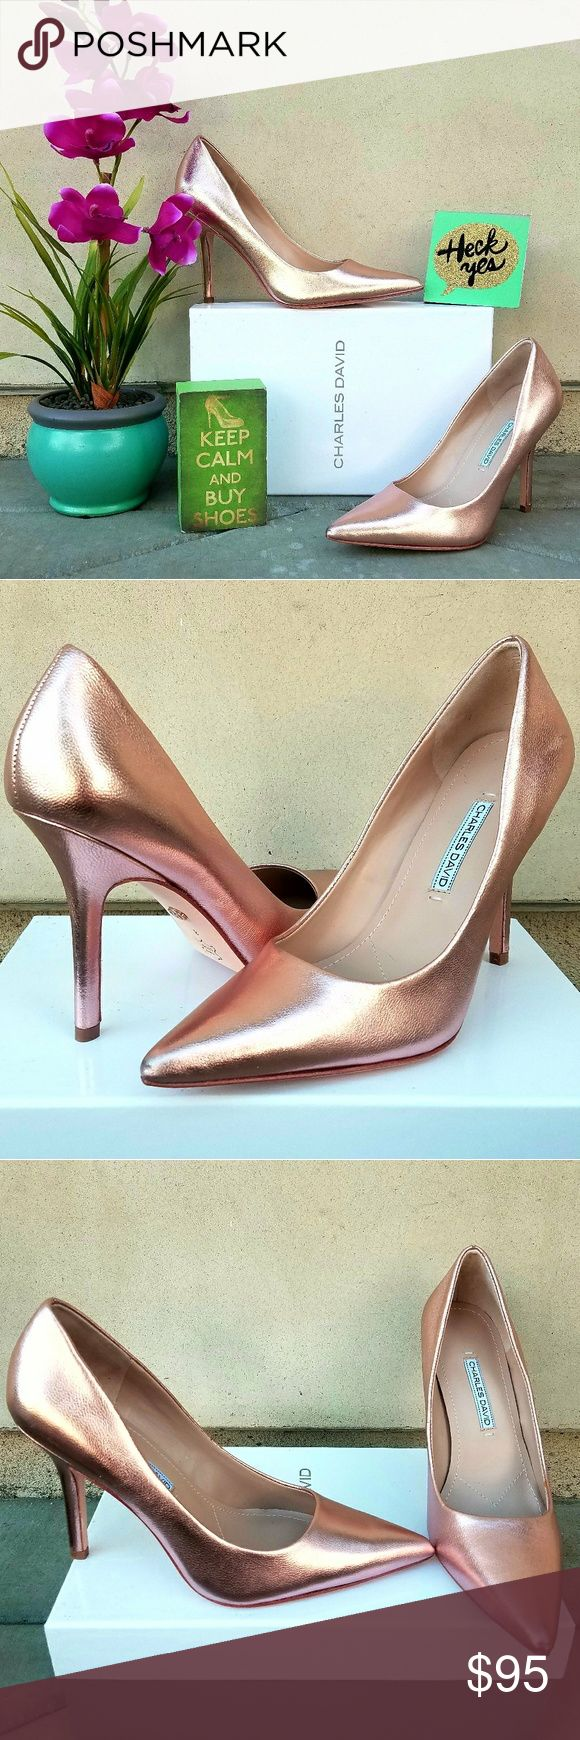 """Beautiful Charles David Stilletos in Rose Gold An immaculate single-sole pump with a pointed toe is lifted by a soaring stiletto heel for an effect that visually lenghtens the look of your leg. These are a beautiful rose gold leather.    -4"""" heel  -Leather upper, lining and sole - New with box Charles David Shoes Heels"""